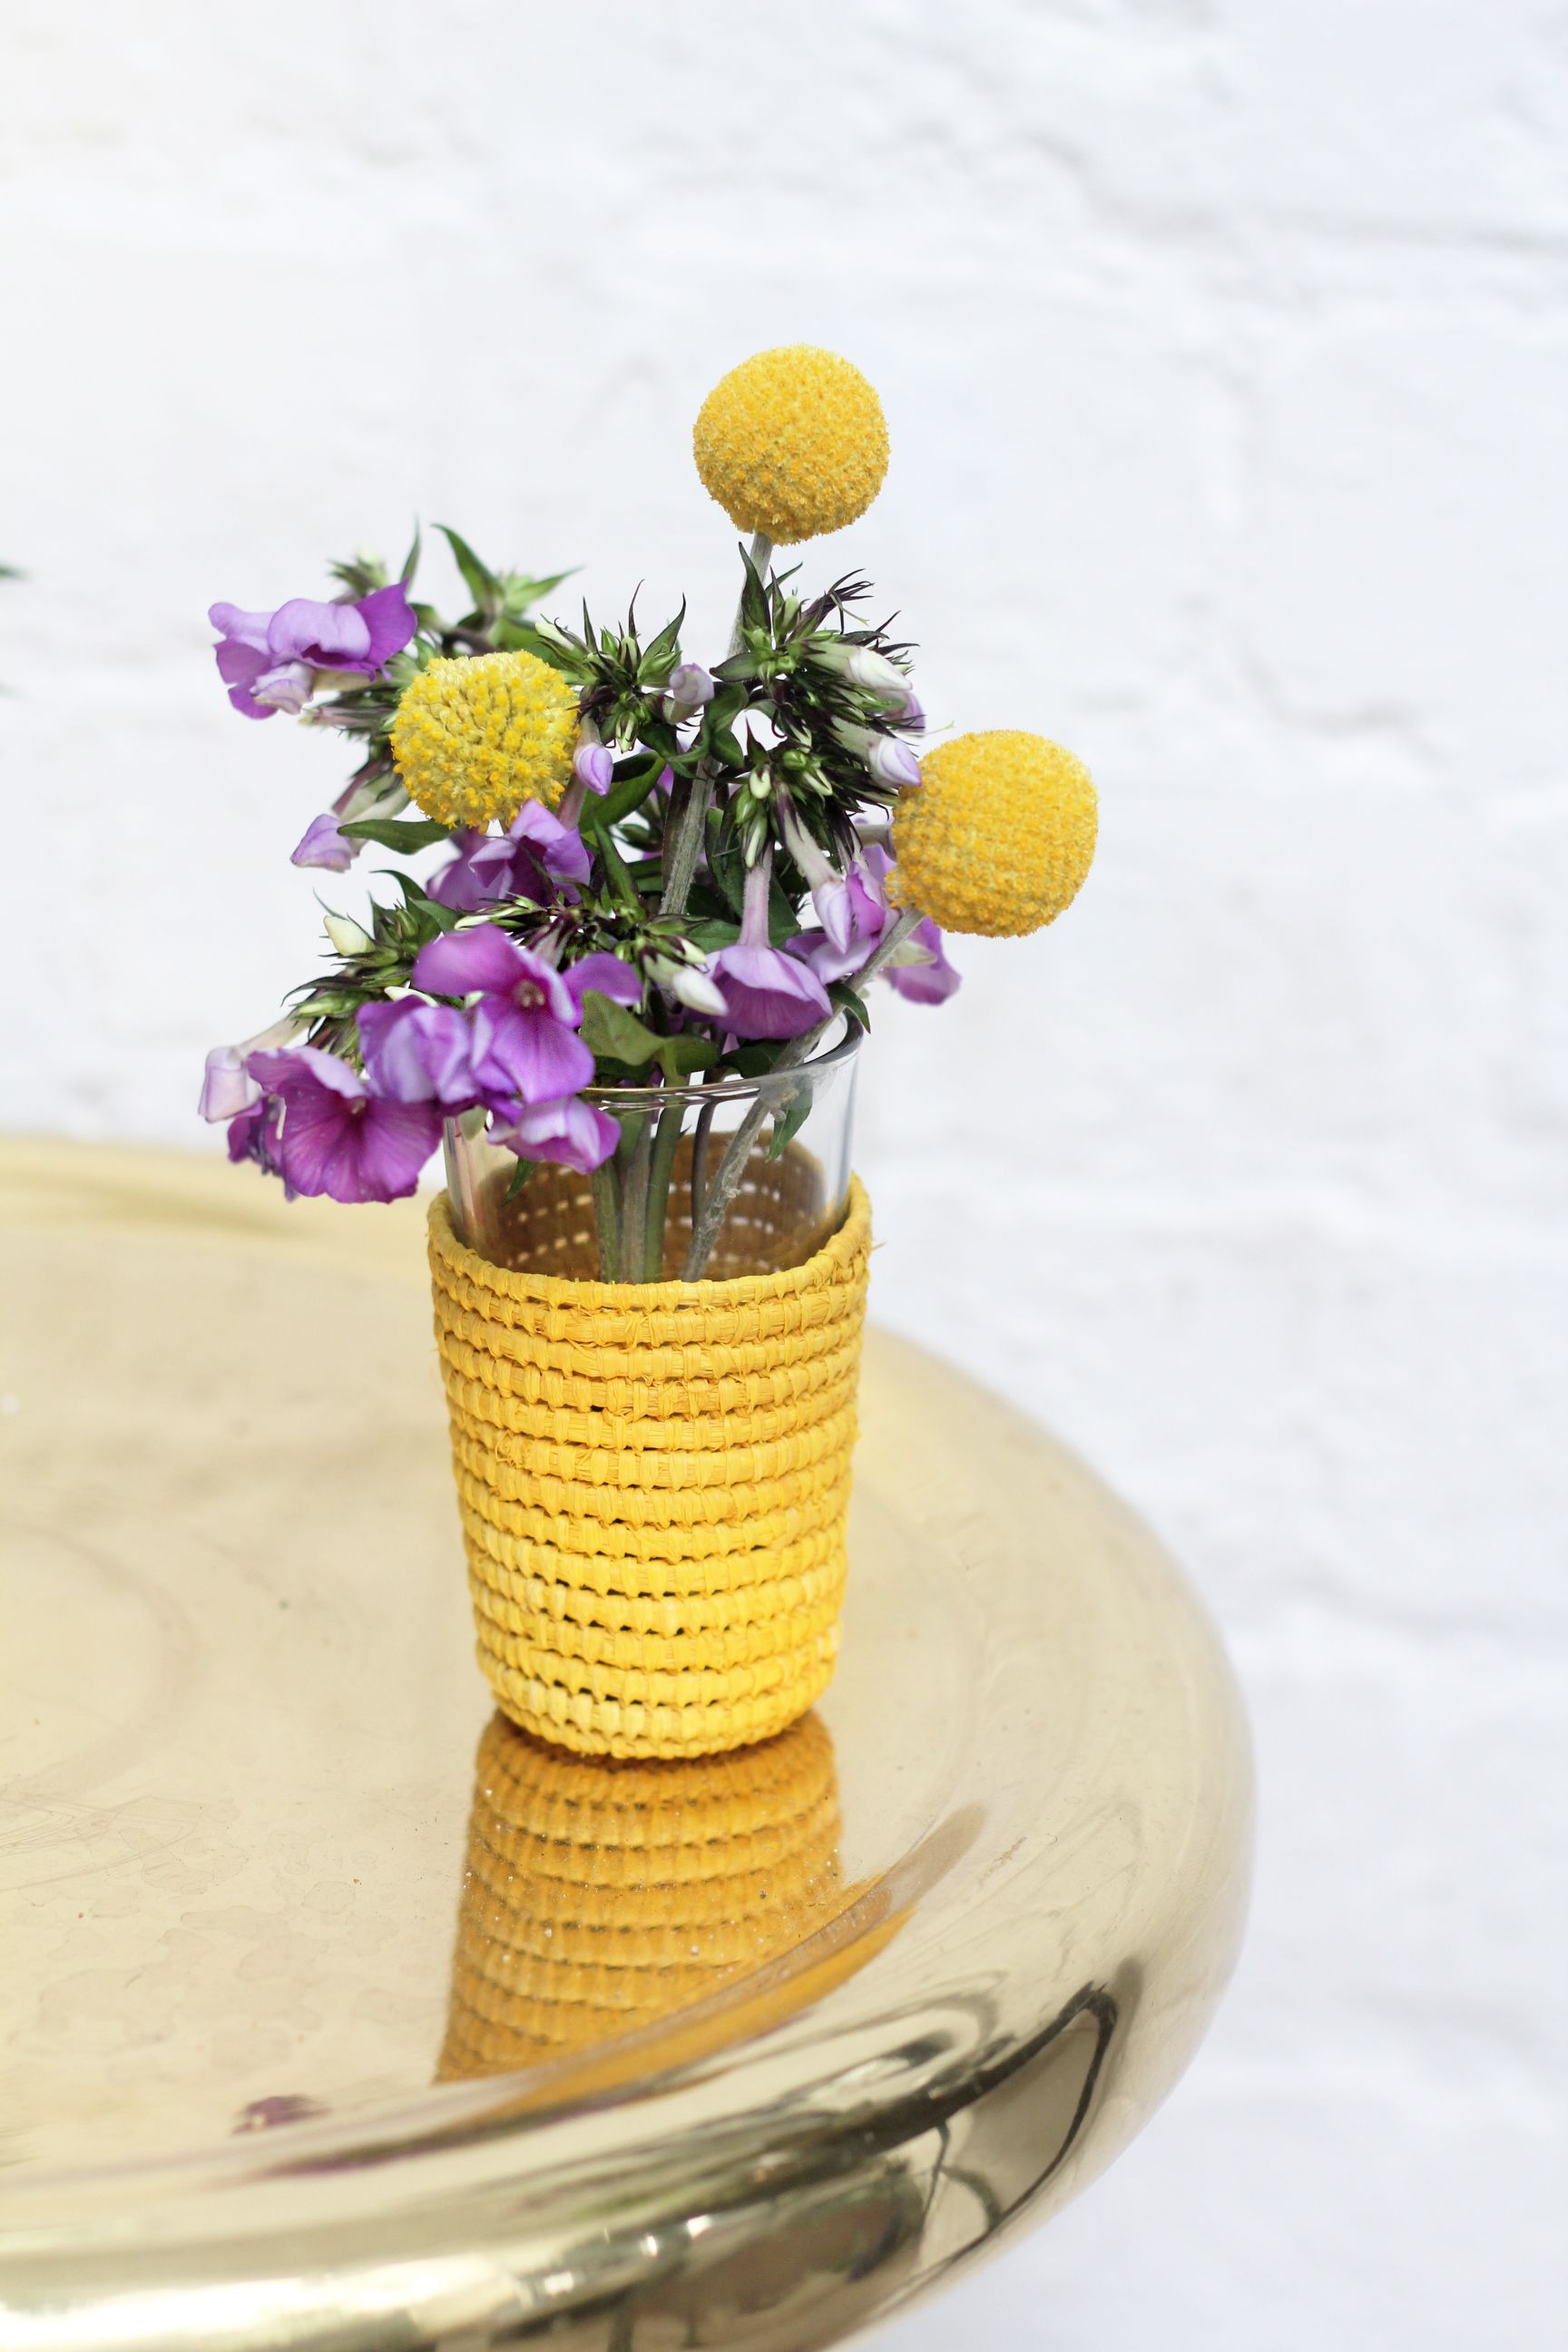 Flowers in vase next day delivery - These Craspedia Will Brighten Any Room Shop The Flowers At Bloom Wild For Letterbox Friendly Delivery And Free Next Day